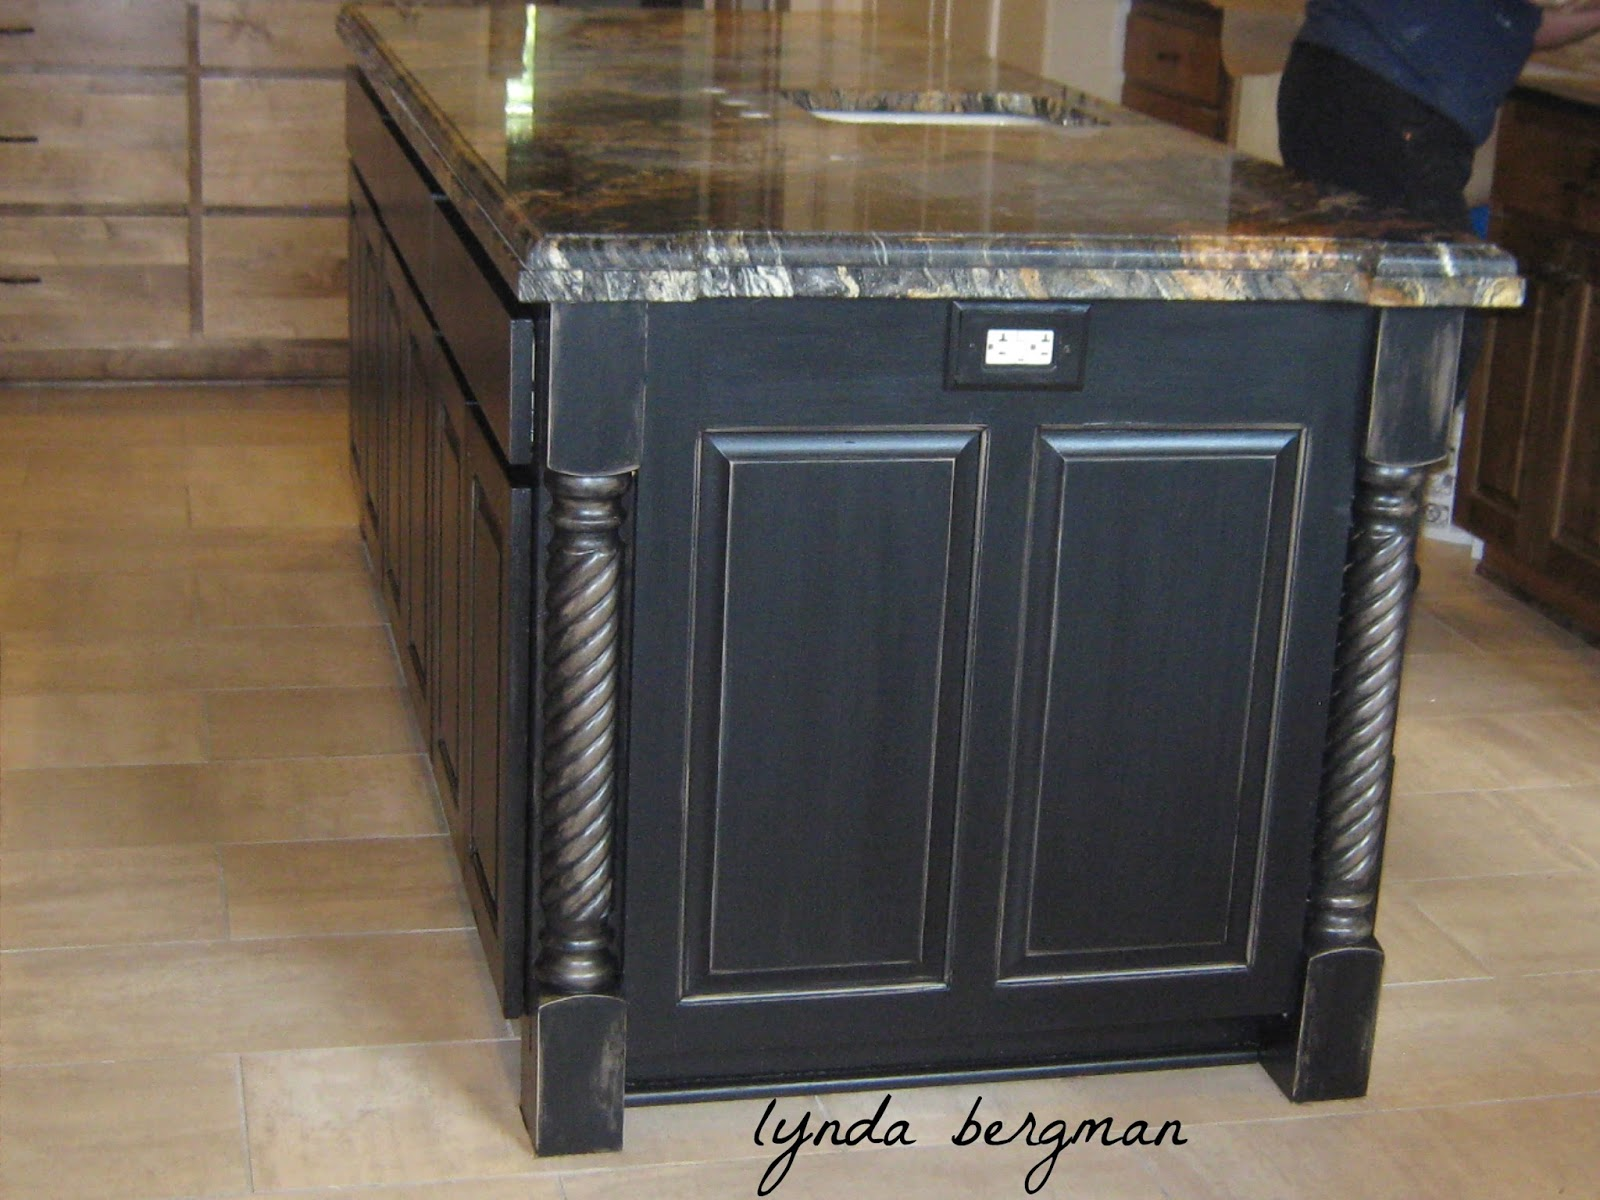 painting veronicas kitchen island wine distressed kitchen cabinets PAINTING VERONICA S KITCHEN ISLAND WINE CABINET A BLACK DISTRESSED SPECIAL FINISH